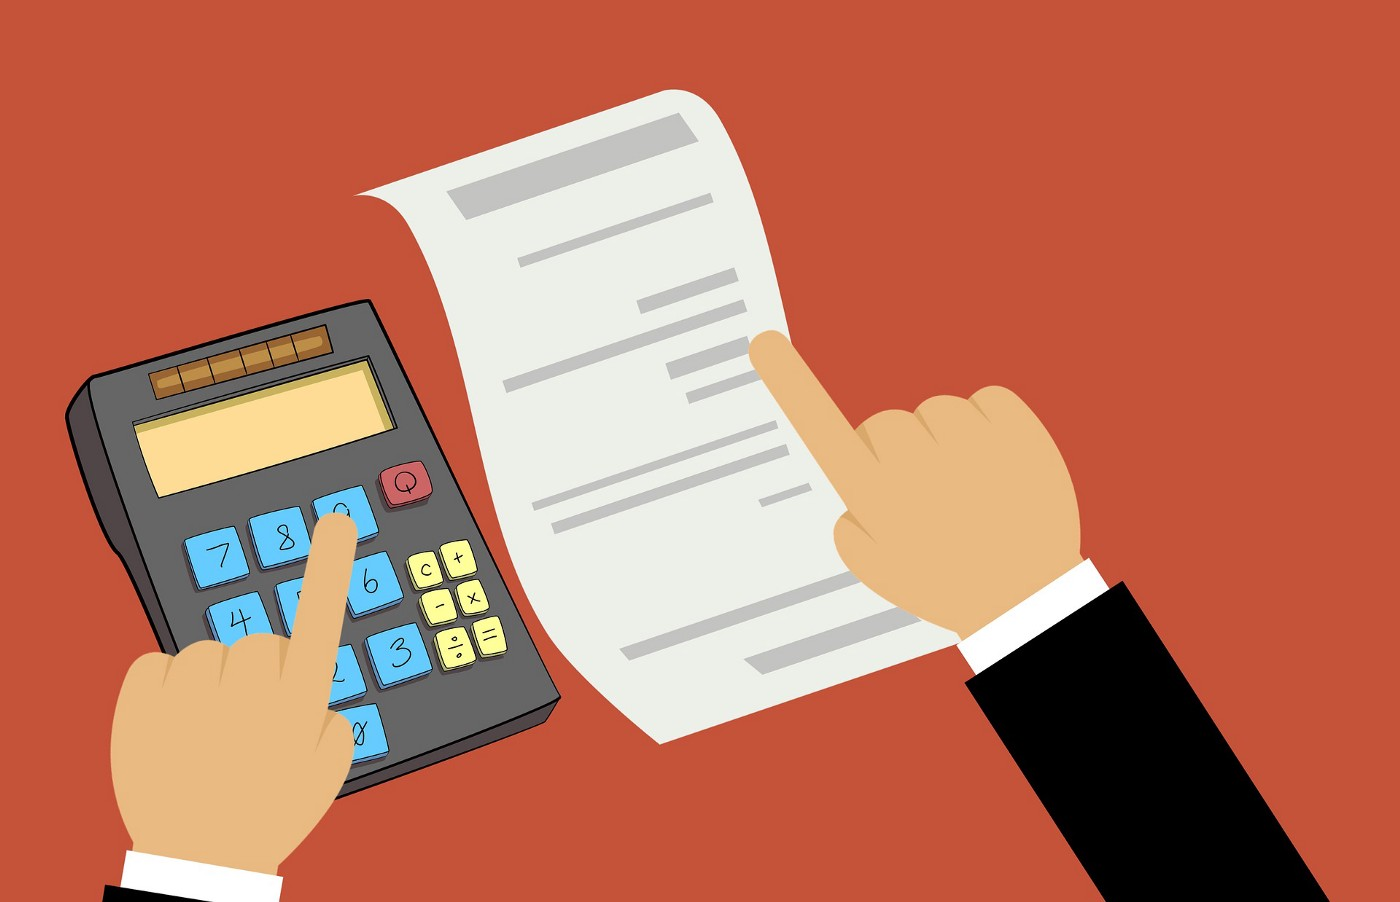 A men Web Developer is calculating Price for a Business Website Development, by taking caluculator and Paper in his hand.